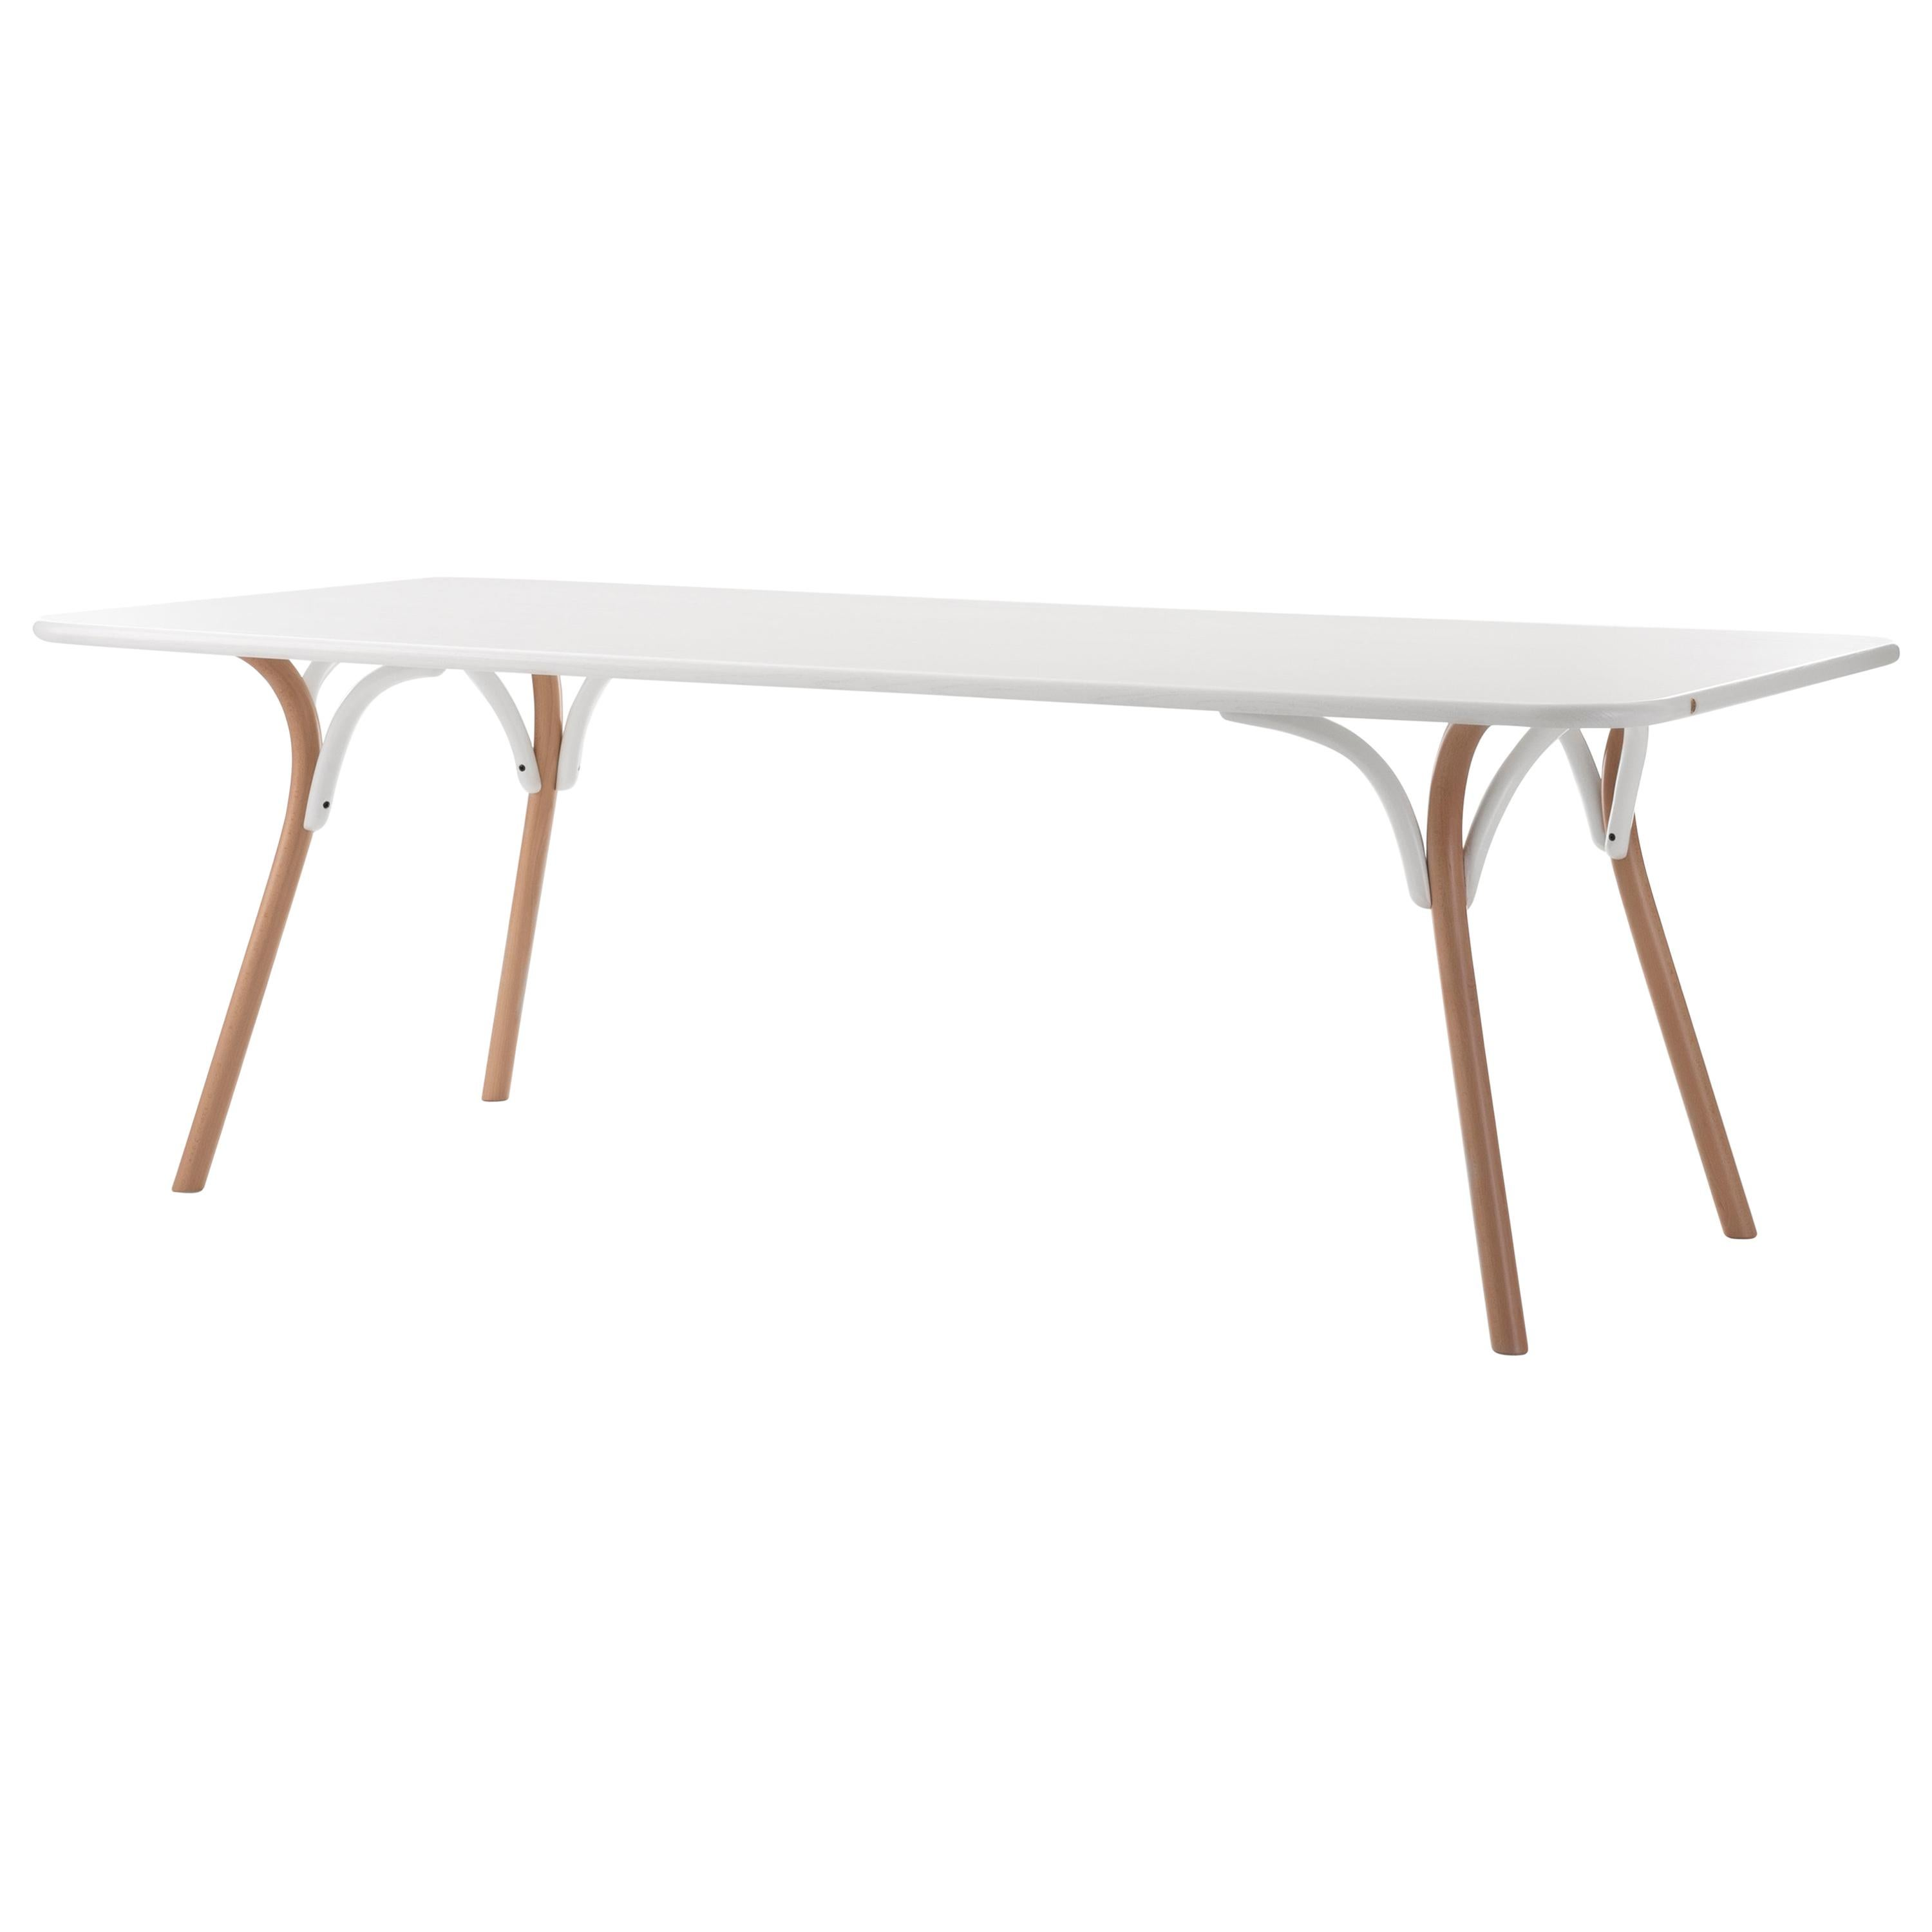 Gebrüder Thonet Vienna GmbH Arch Large Dining Table with White Top & Beech Base